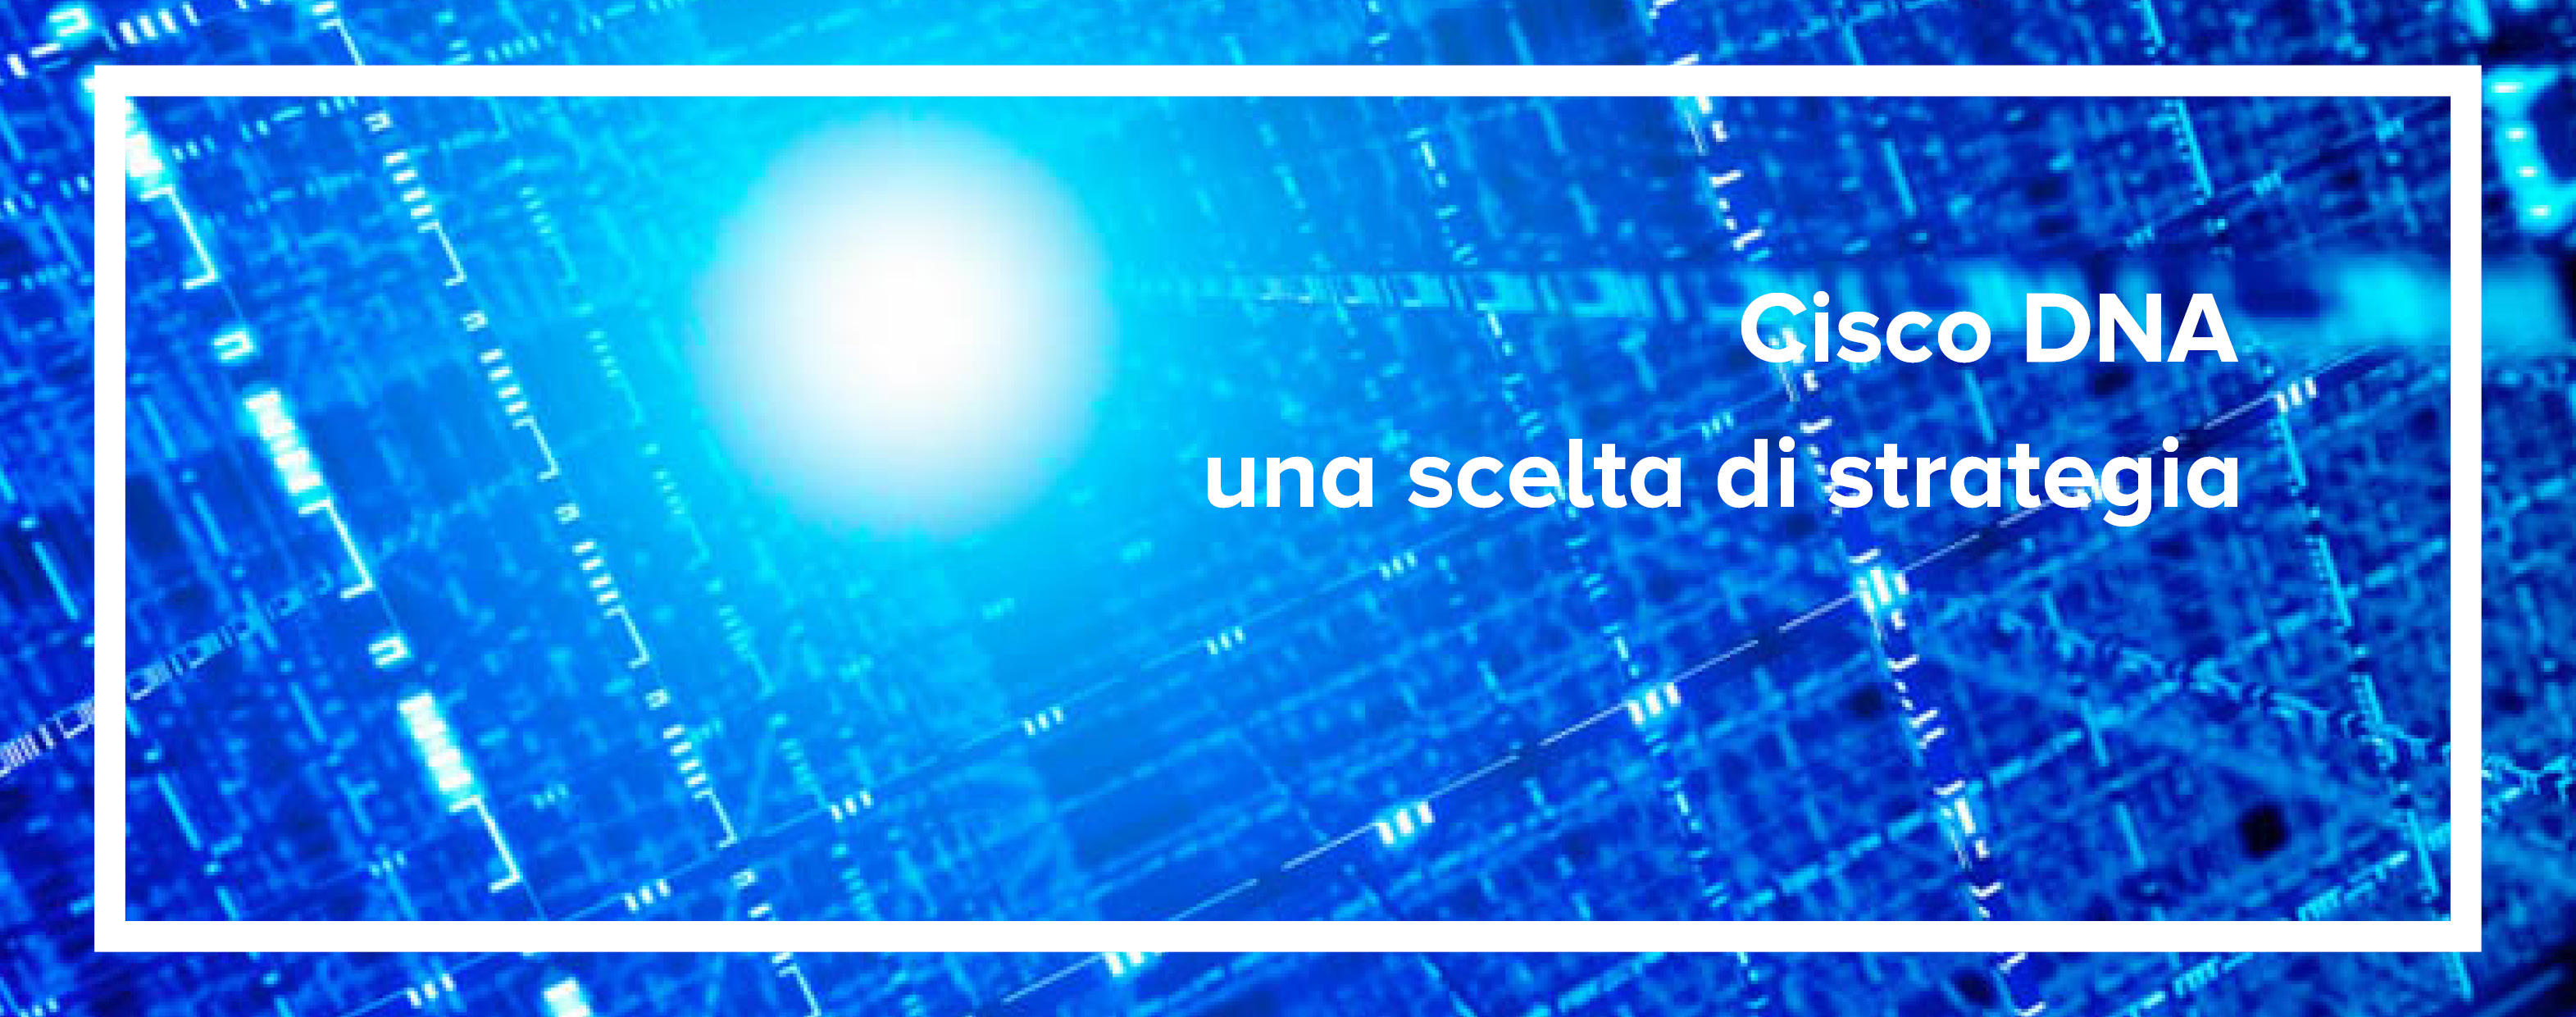 Cisco DNA, l'architettura per le reti IT aziendali strategiche. L'intervista.